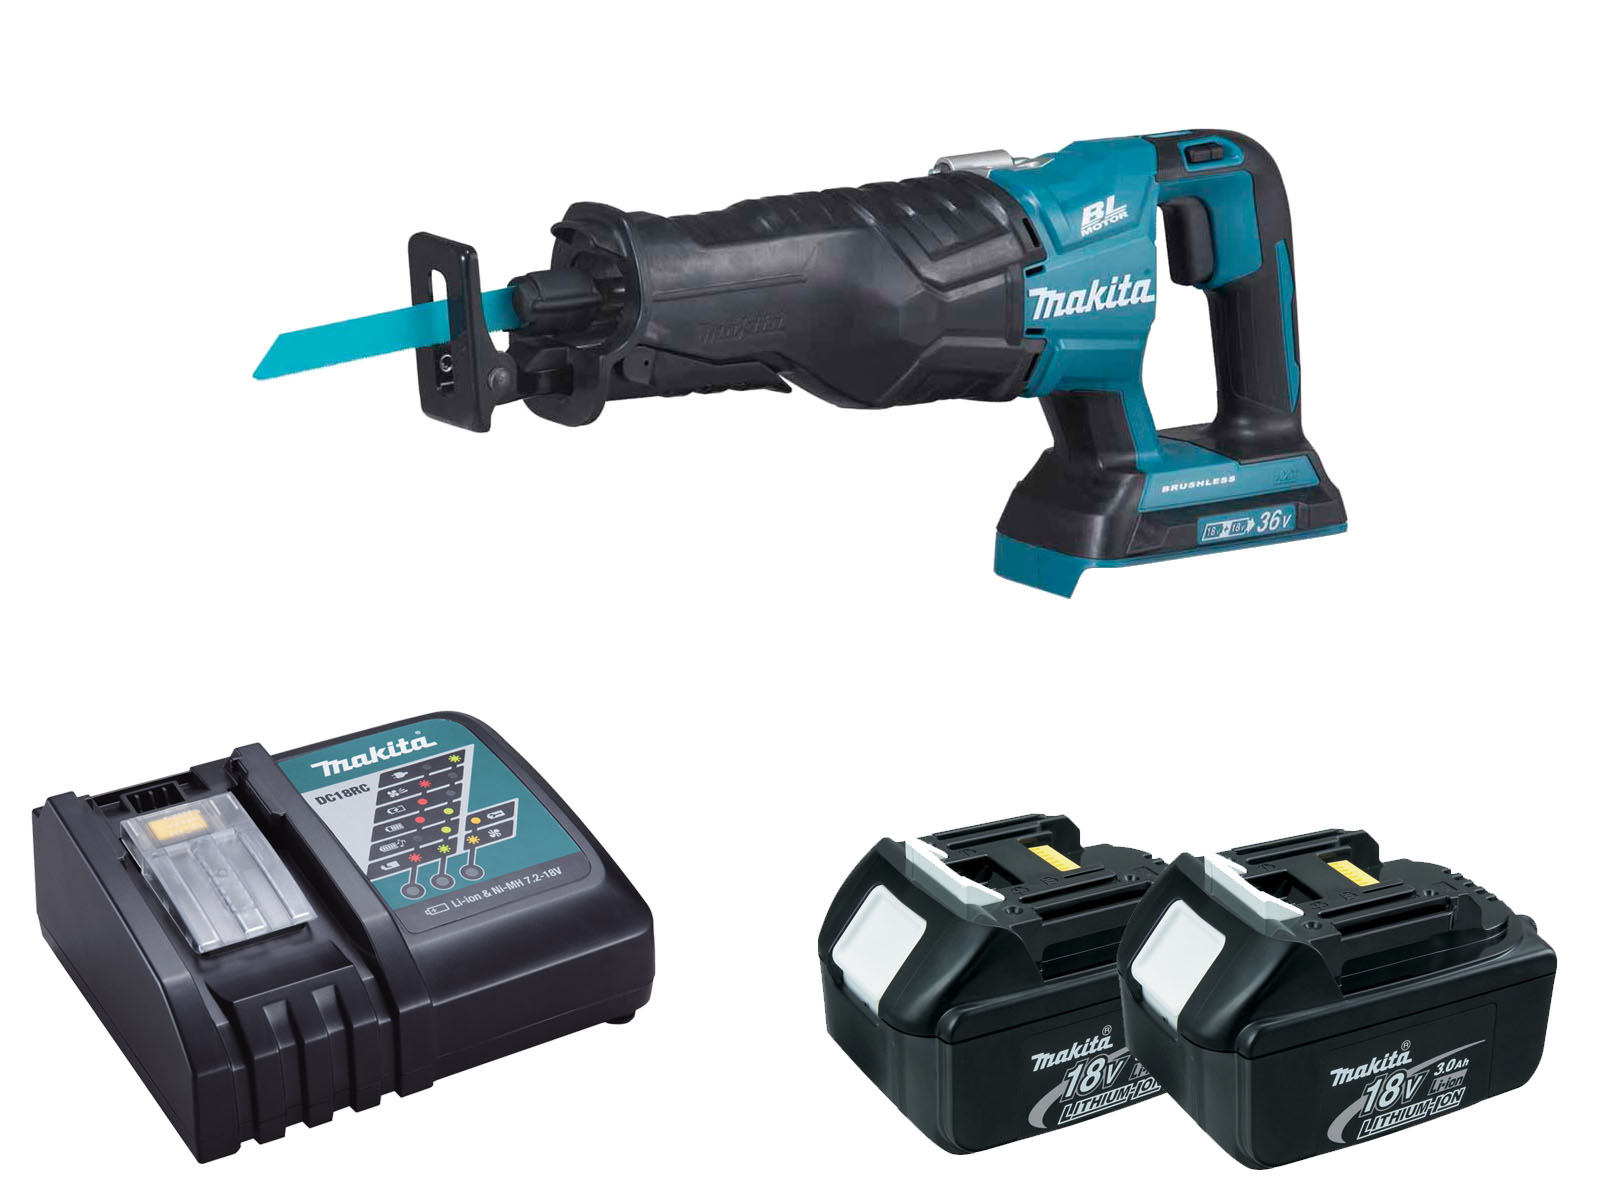 Makita DJR360Z Twin 18V (36V) Brushless Reciprocating Saw LXT - 3.0ah Pack